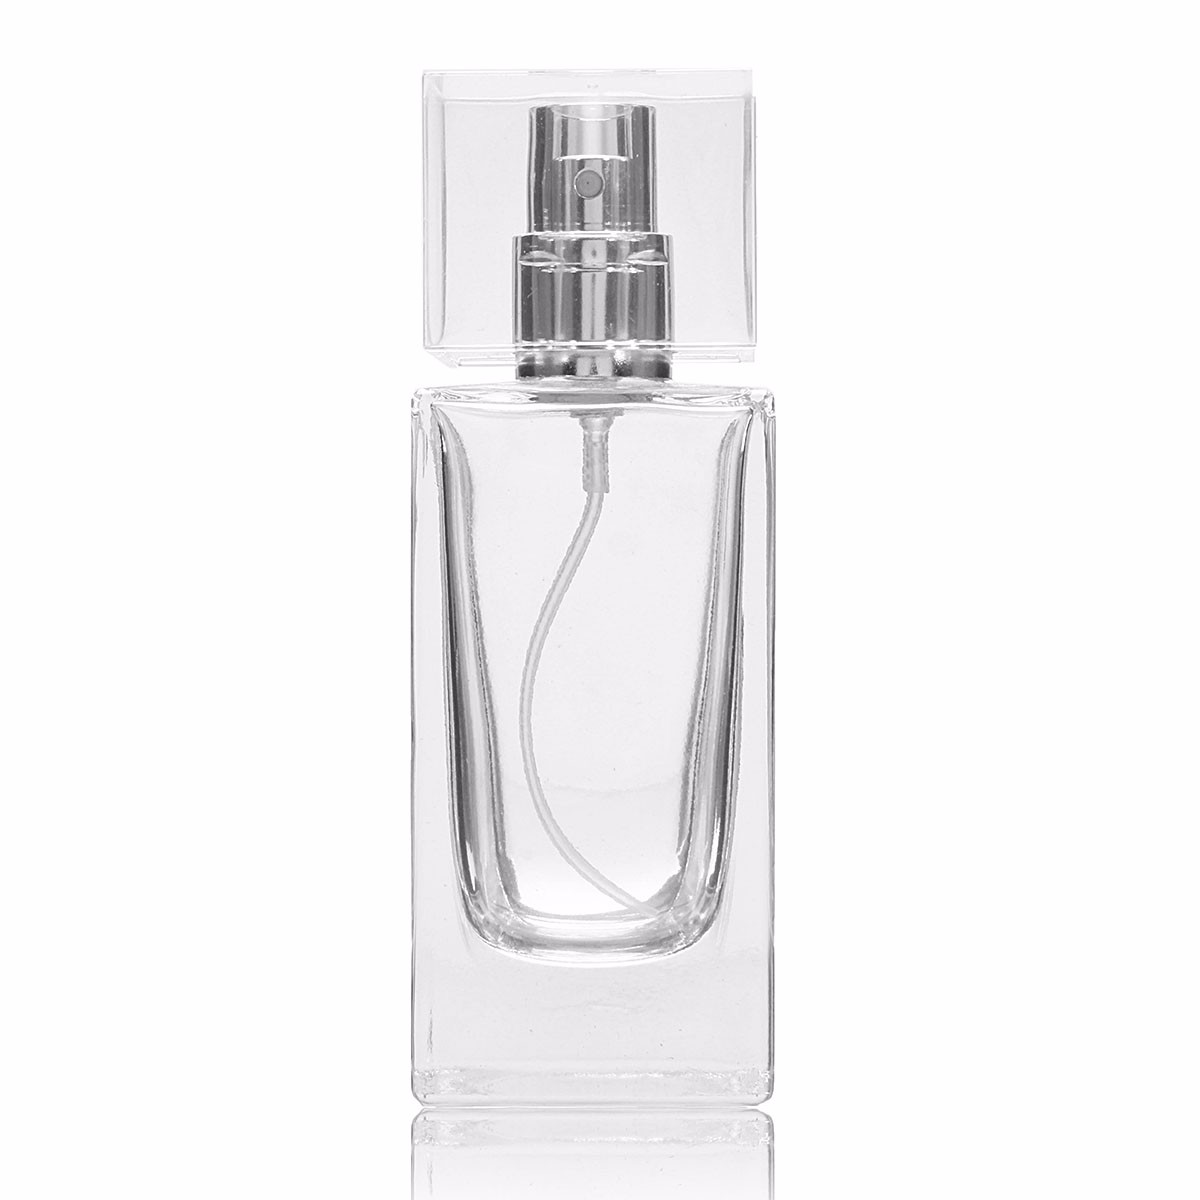 0ml Perfume Glass Bottle Refillable Bottle With Silver Metal Spray Clear Cap Empty Packaging Case With Atomizer For Cosmetic 100pcs new 2ml clear glass roll on bottle with clear cap